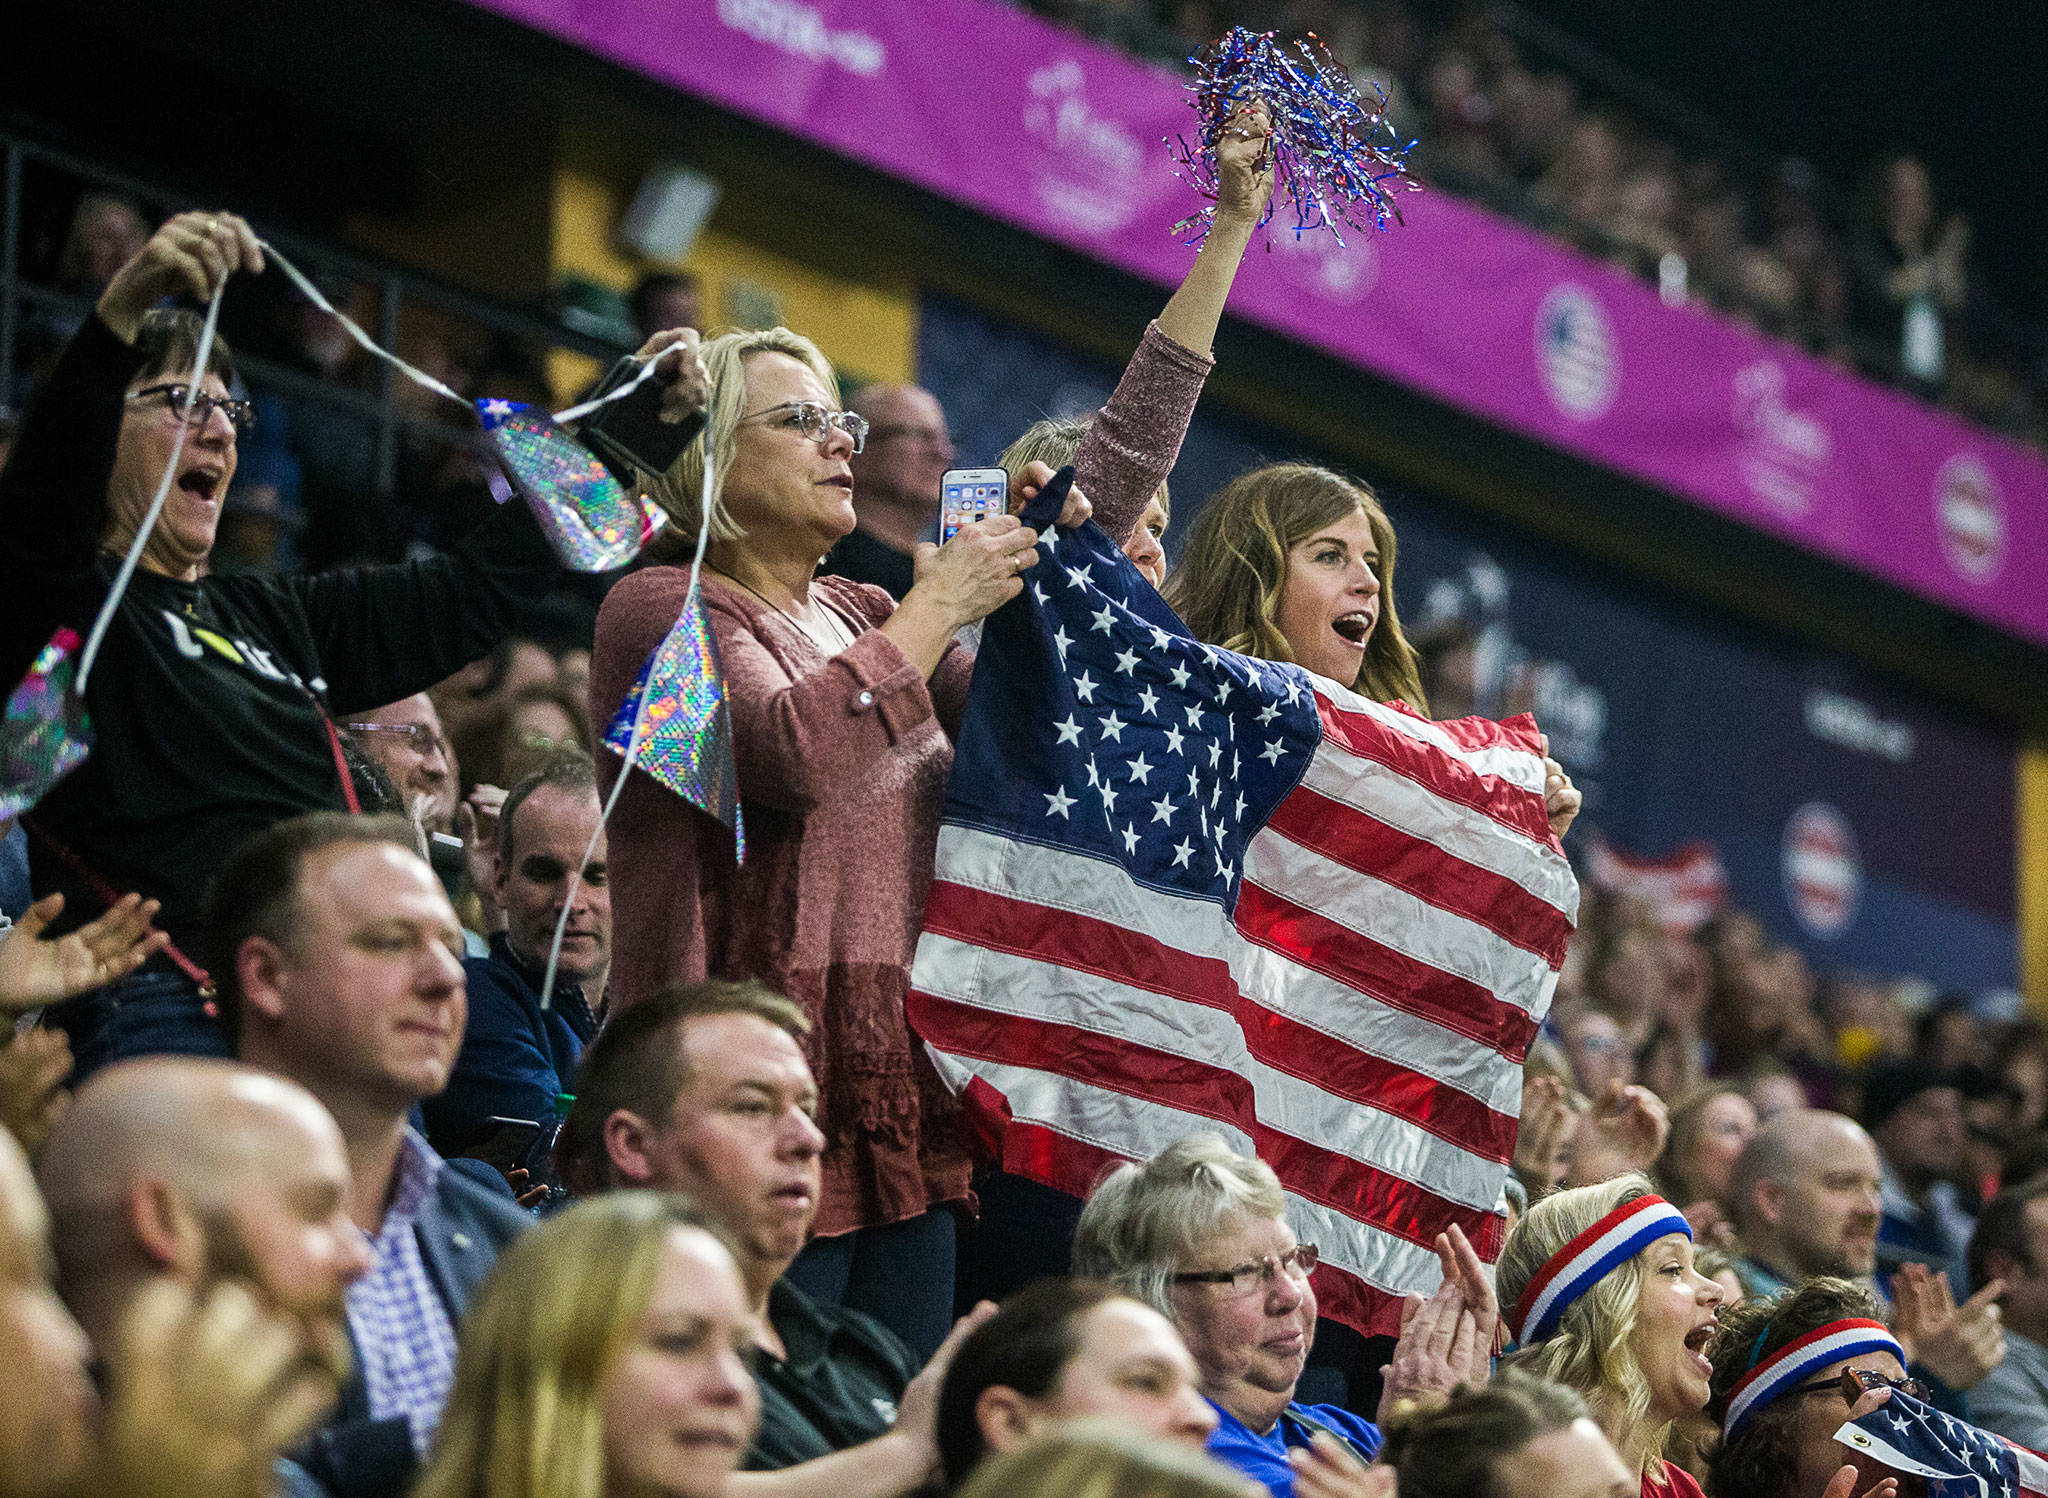 Fans at Angel of the Winds Arena cheer for American tennis player Sofia Kenin during a Fed Cup qualifier against Latvia on Feb. 7 in Everett. The event attracted back-to-back sellout crowds of over 6,300 fans. (Olivia Vanni / The Herald)